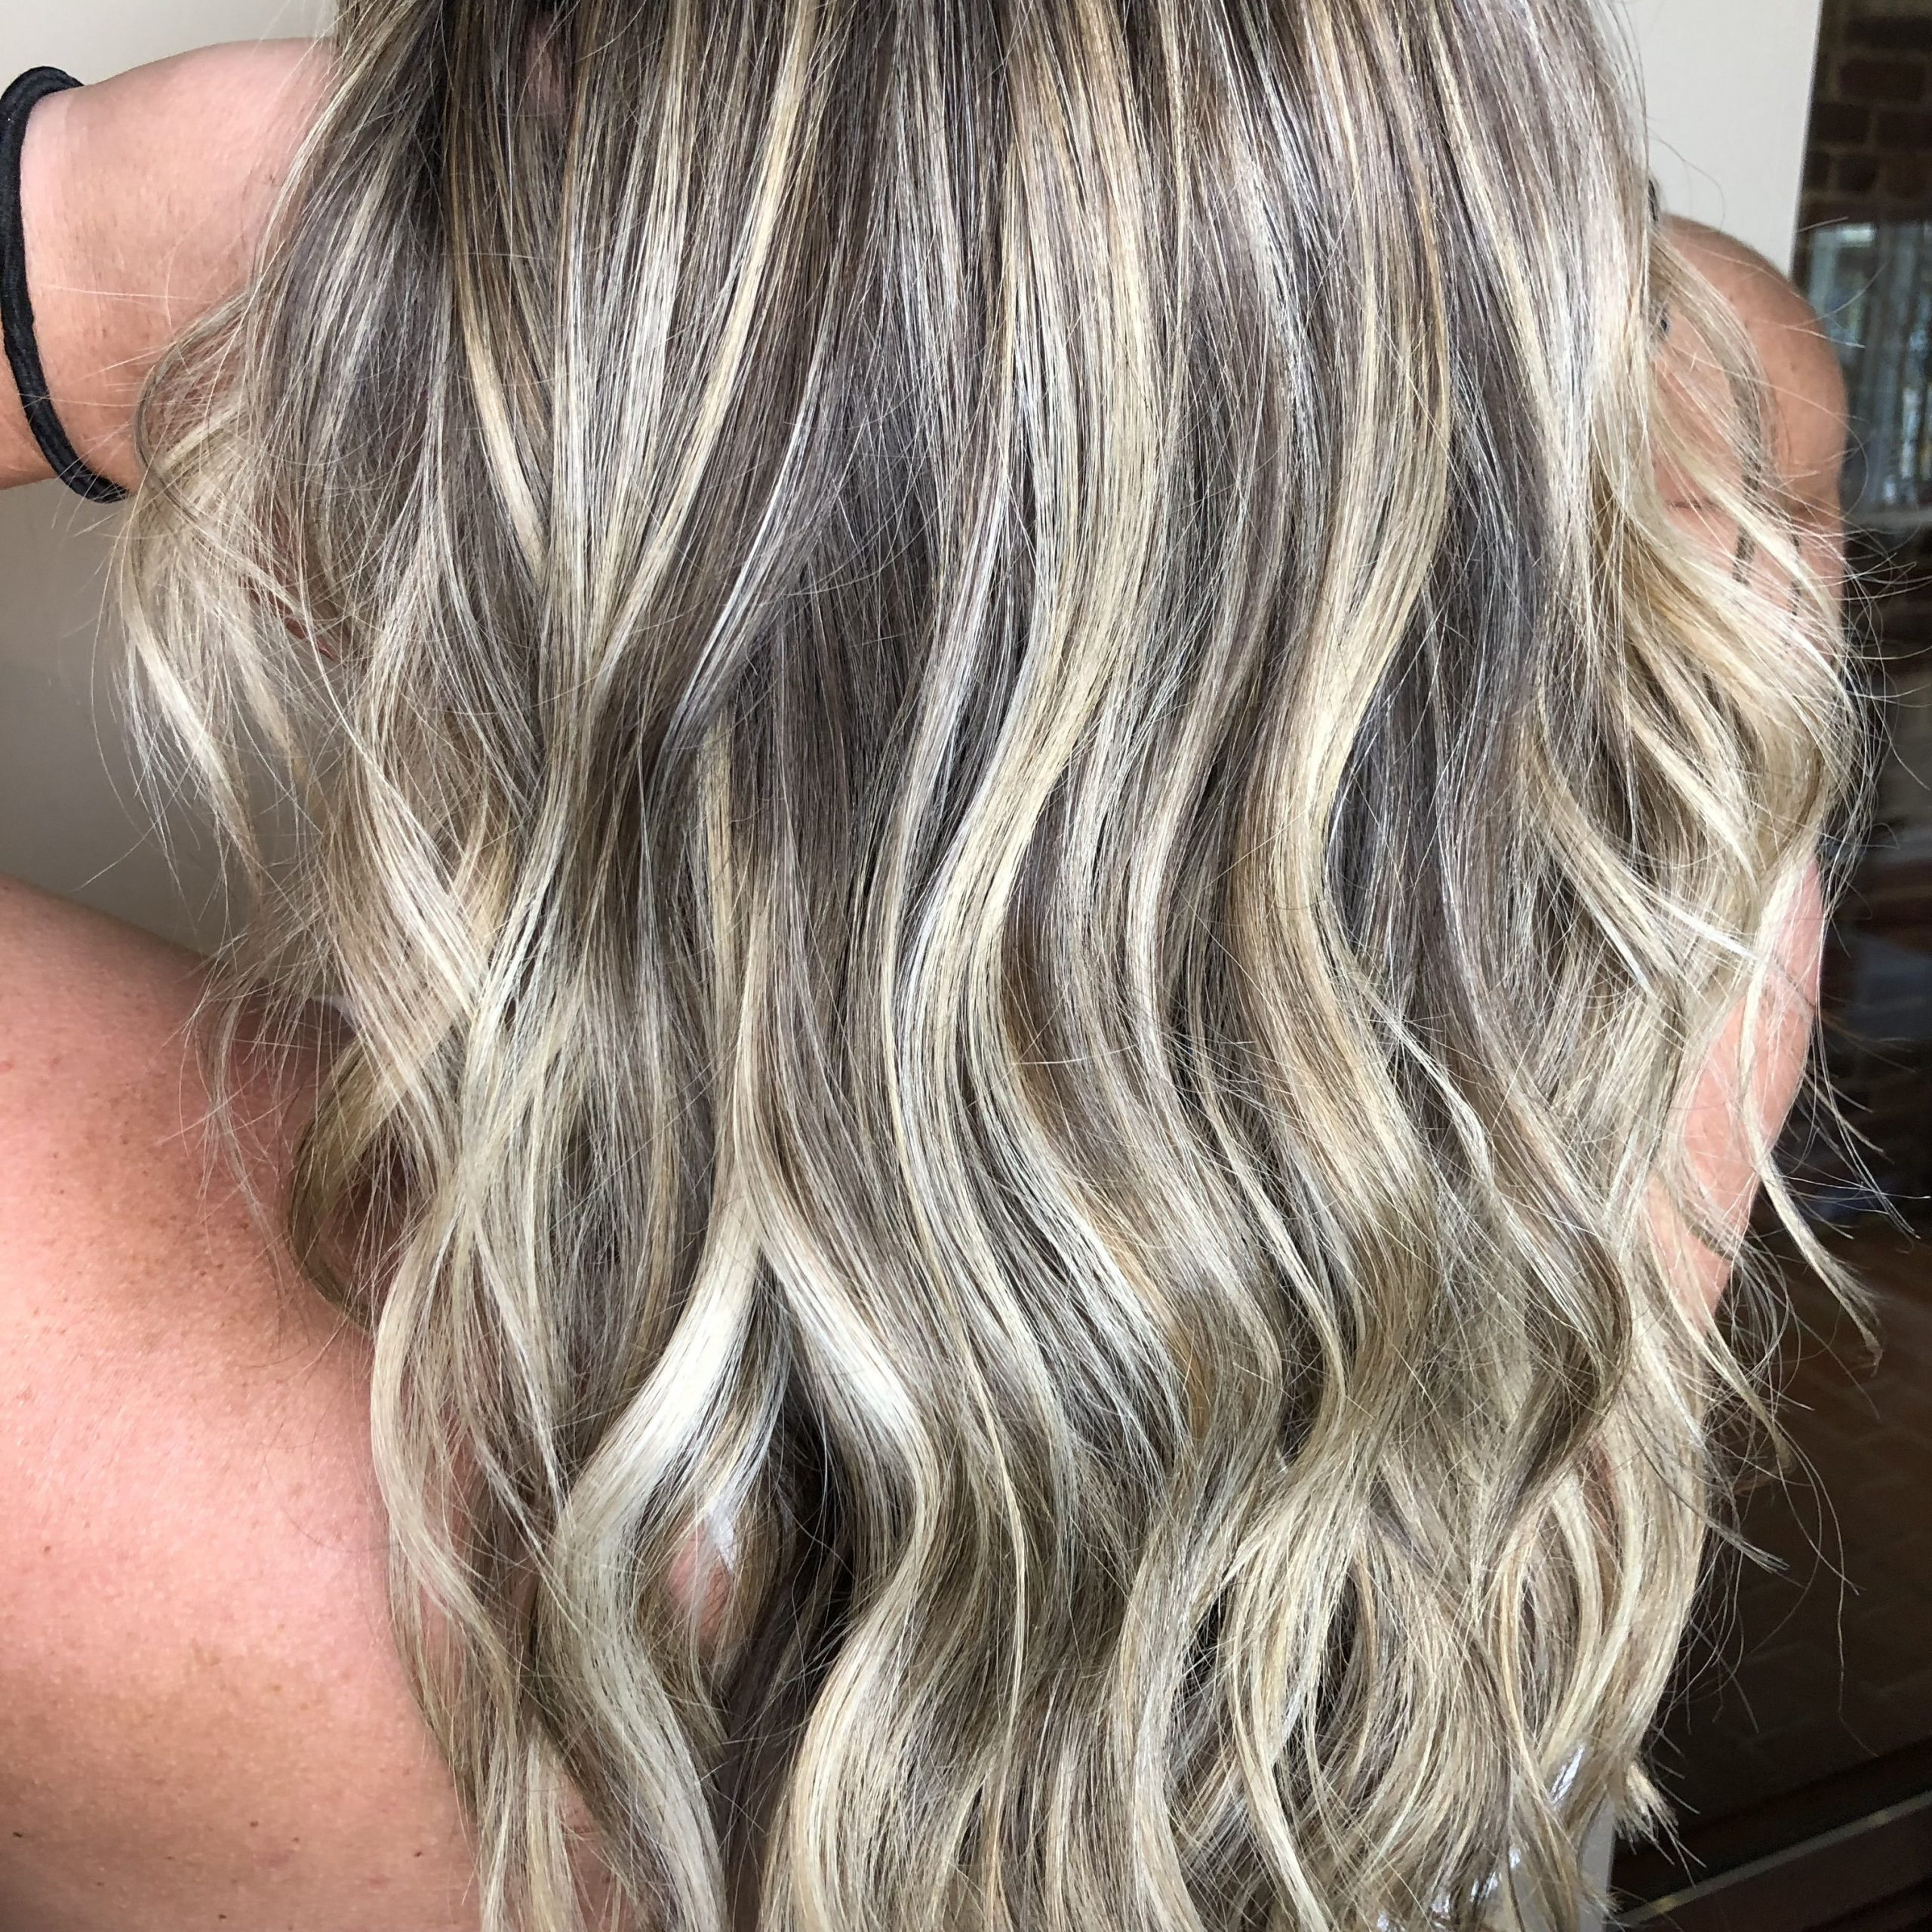 Balayage   Hair Beauty, Ash Blonde Hair, Long Hair Styles Throughout Long Pixie Hairstyles With Dramatic Blonde Balayage (View 3 of 20)